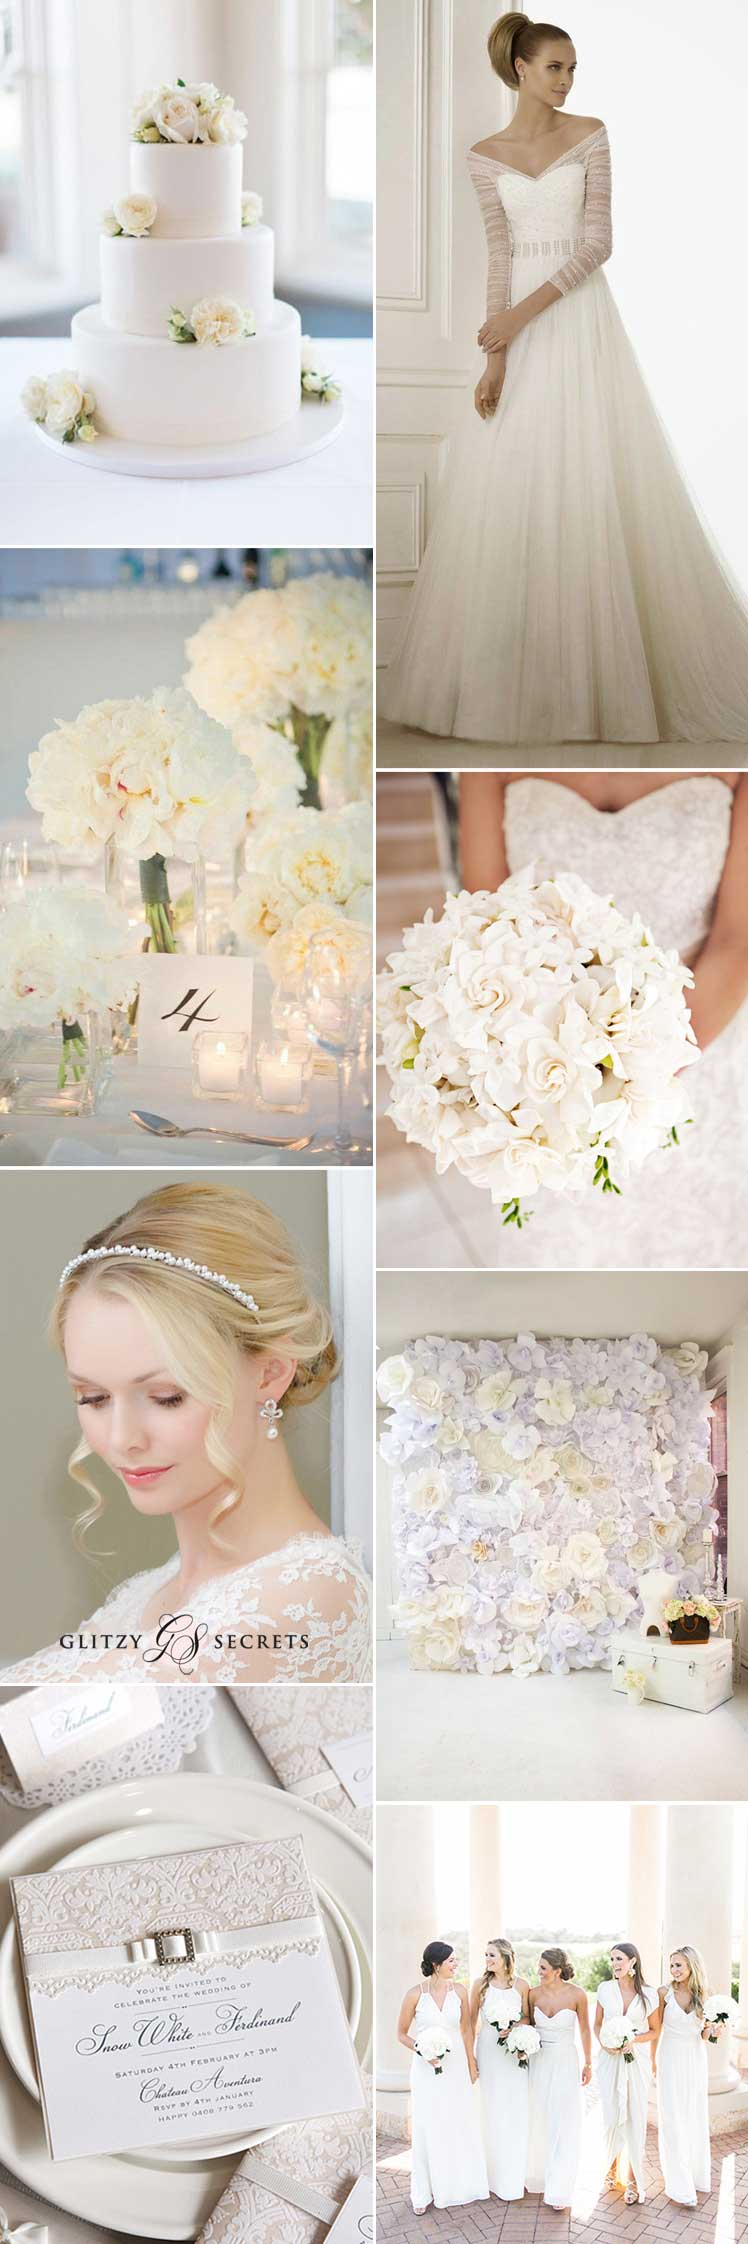 Beautiful white wedding ideas